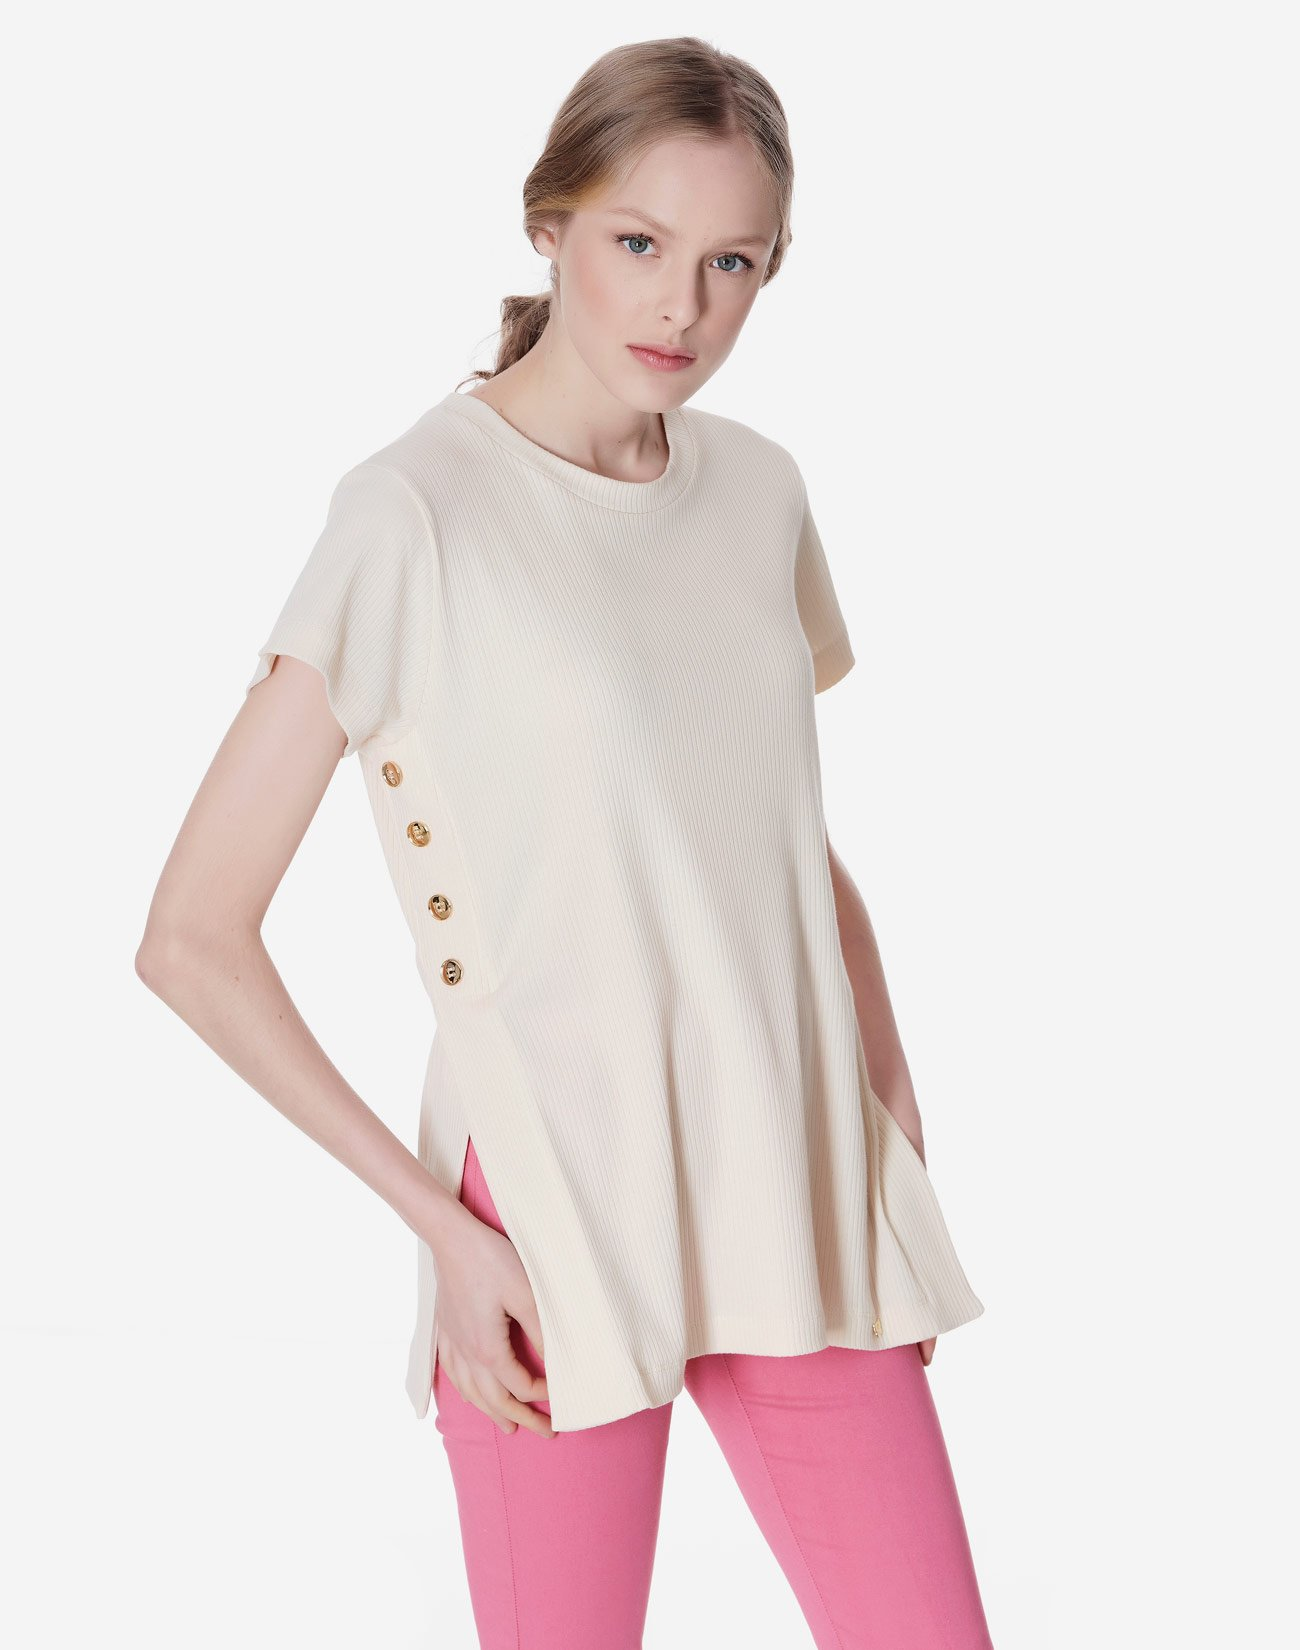 Ribbed top with button detail